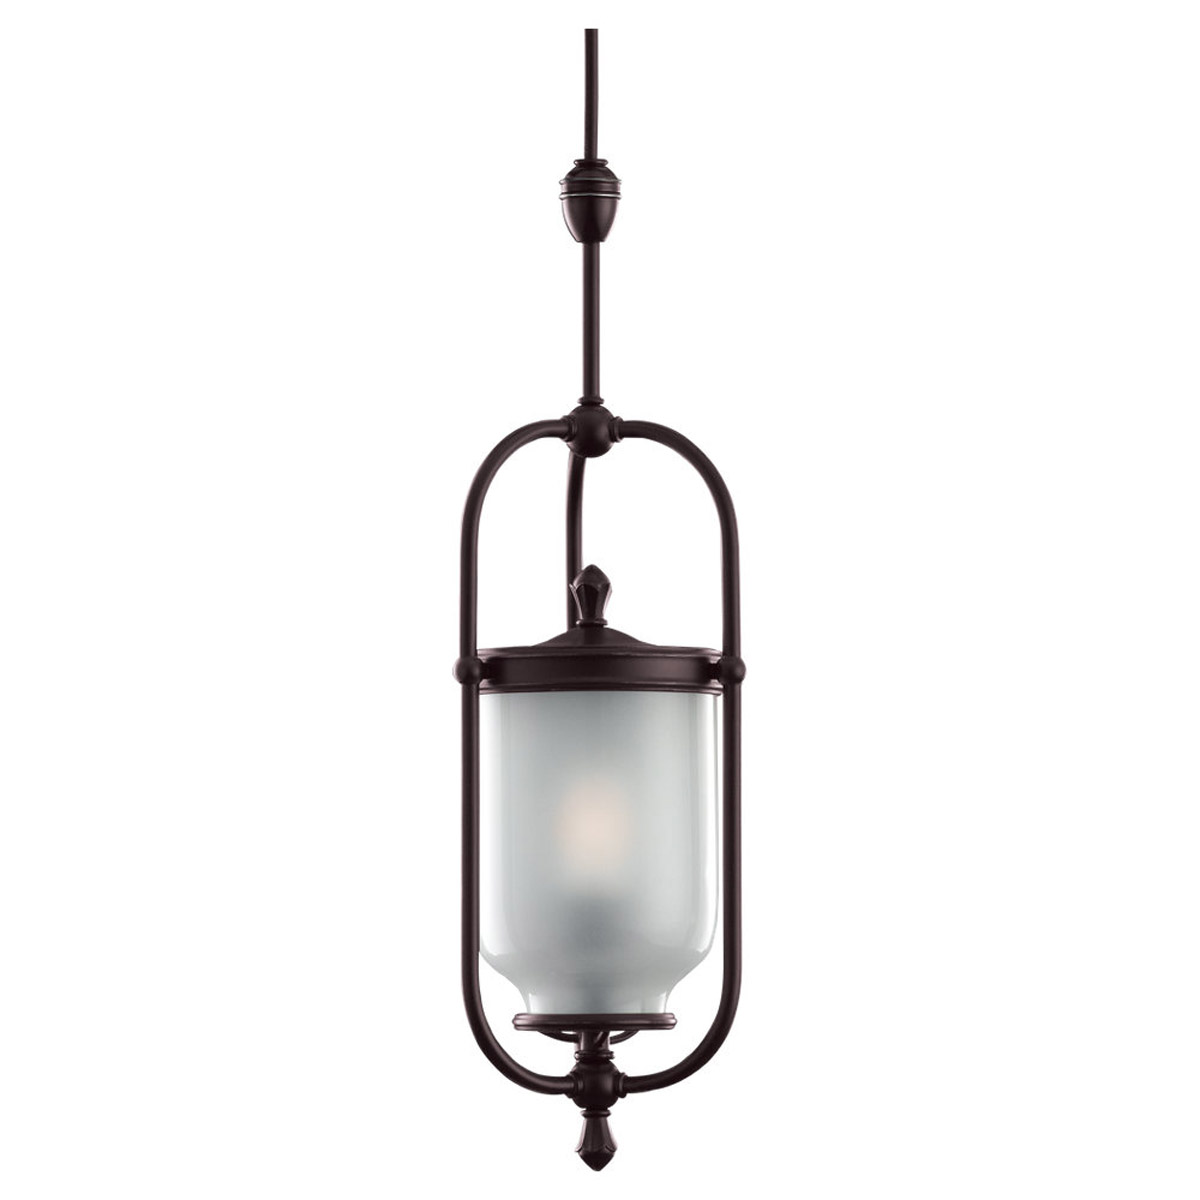 Sea Gull Lighting Wallace 1 + 1 Light Complete Pendant Assembly in Antique Bronze 94566-71 photo